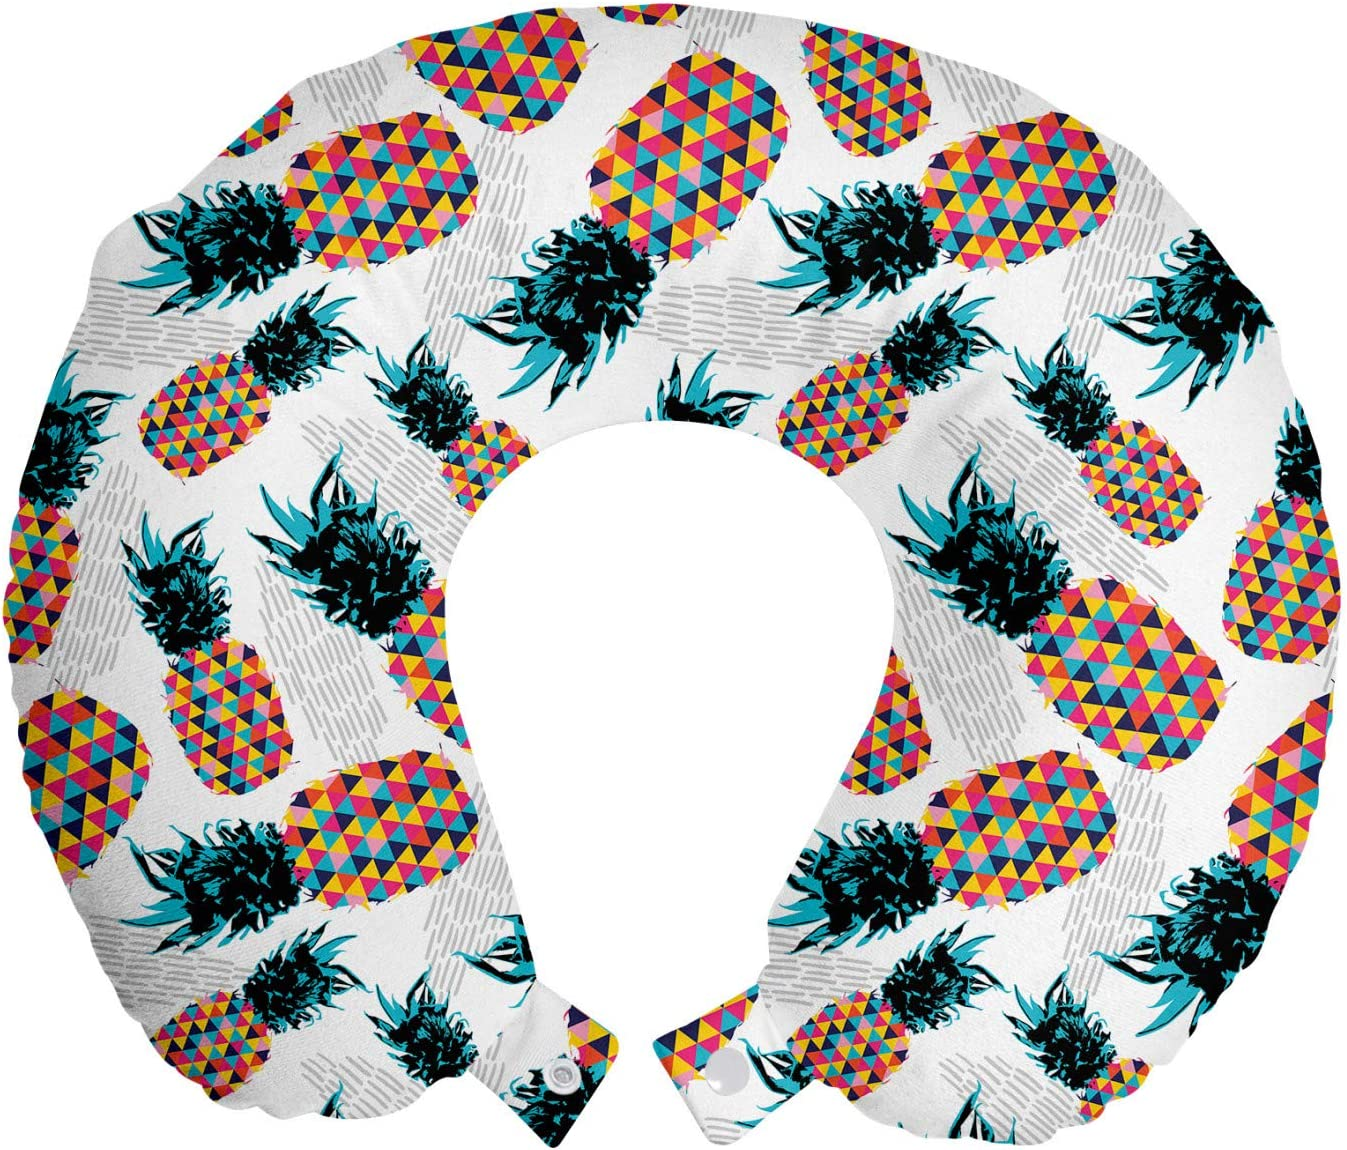 Ambesonne Contemporary Brand new Travel Free Shipping New Pillow Rest with Pineapples Neck